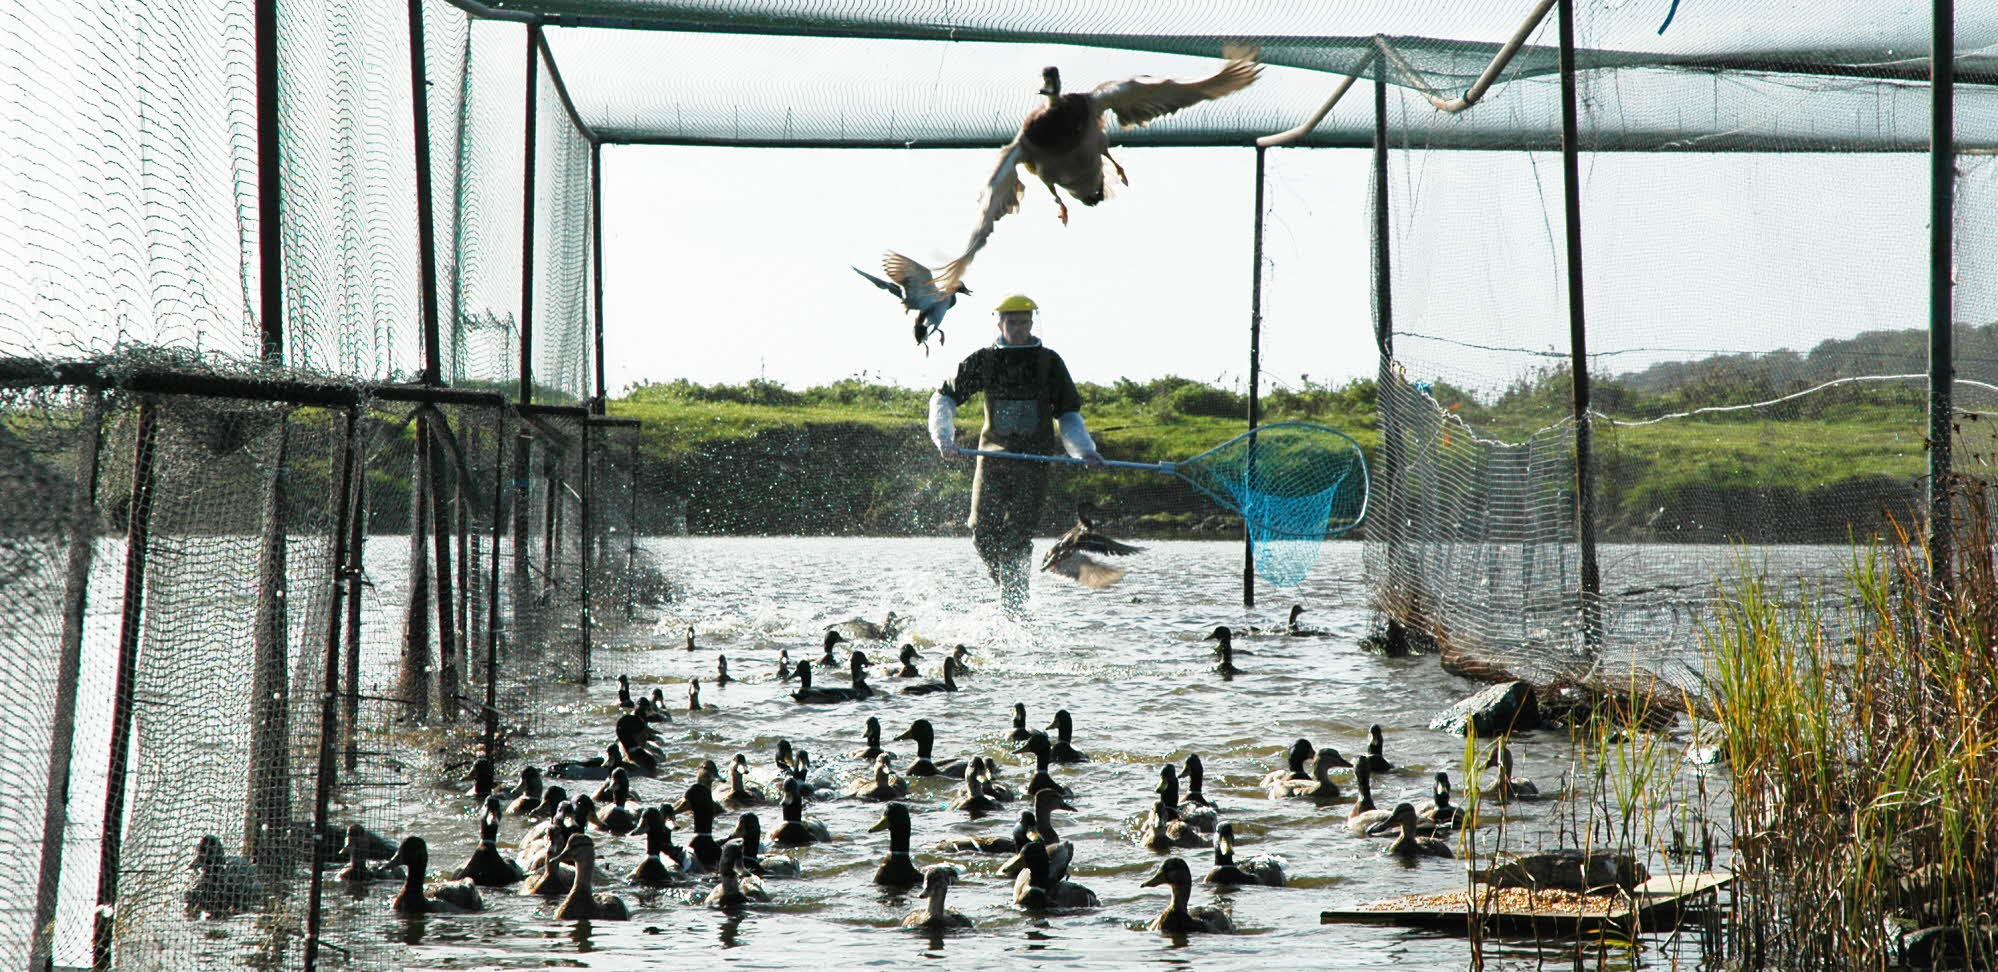 Ducks being captured for research at Ottenby Bird Observatory